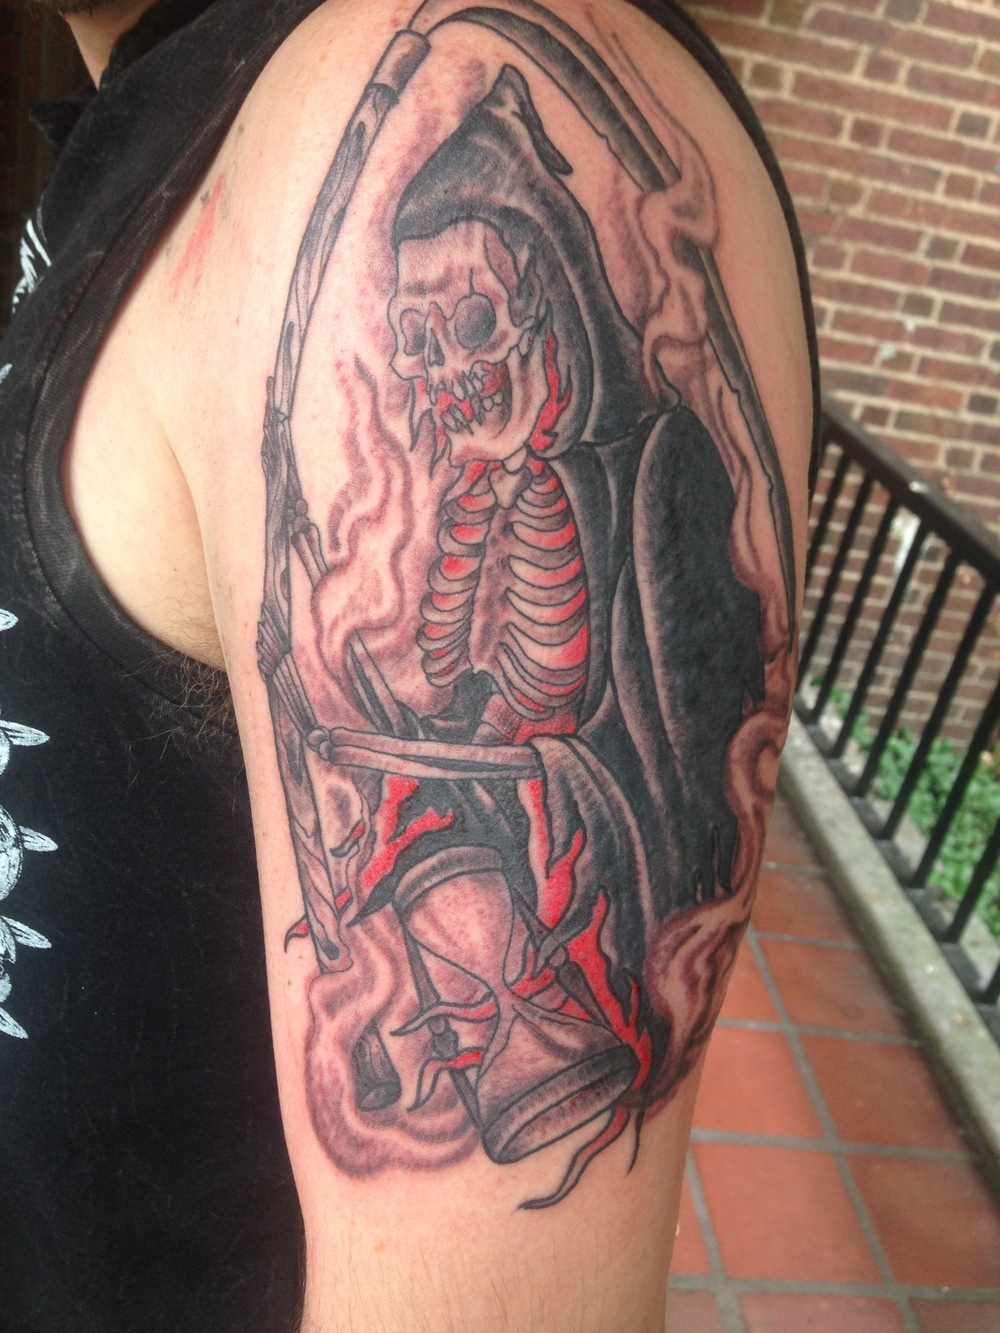 the-reaper--matt-lucci-tattoo.JPG